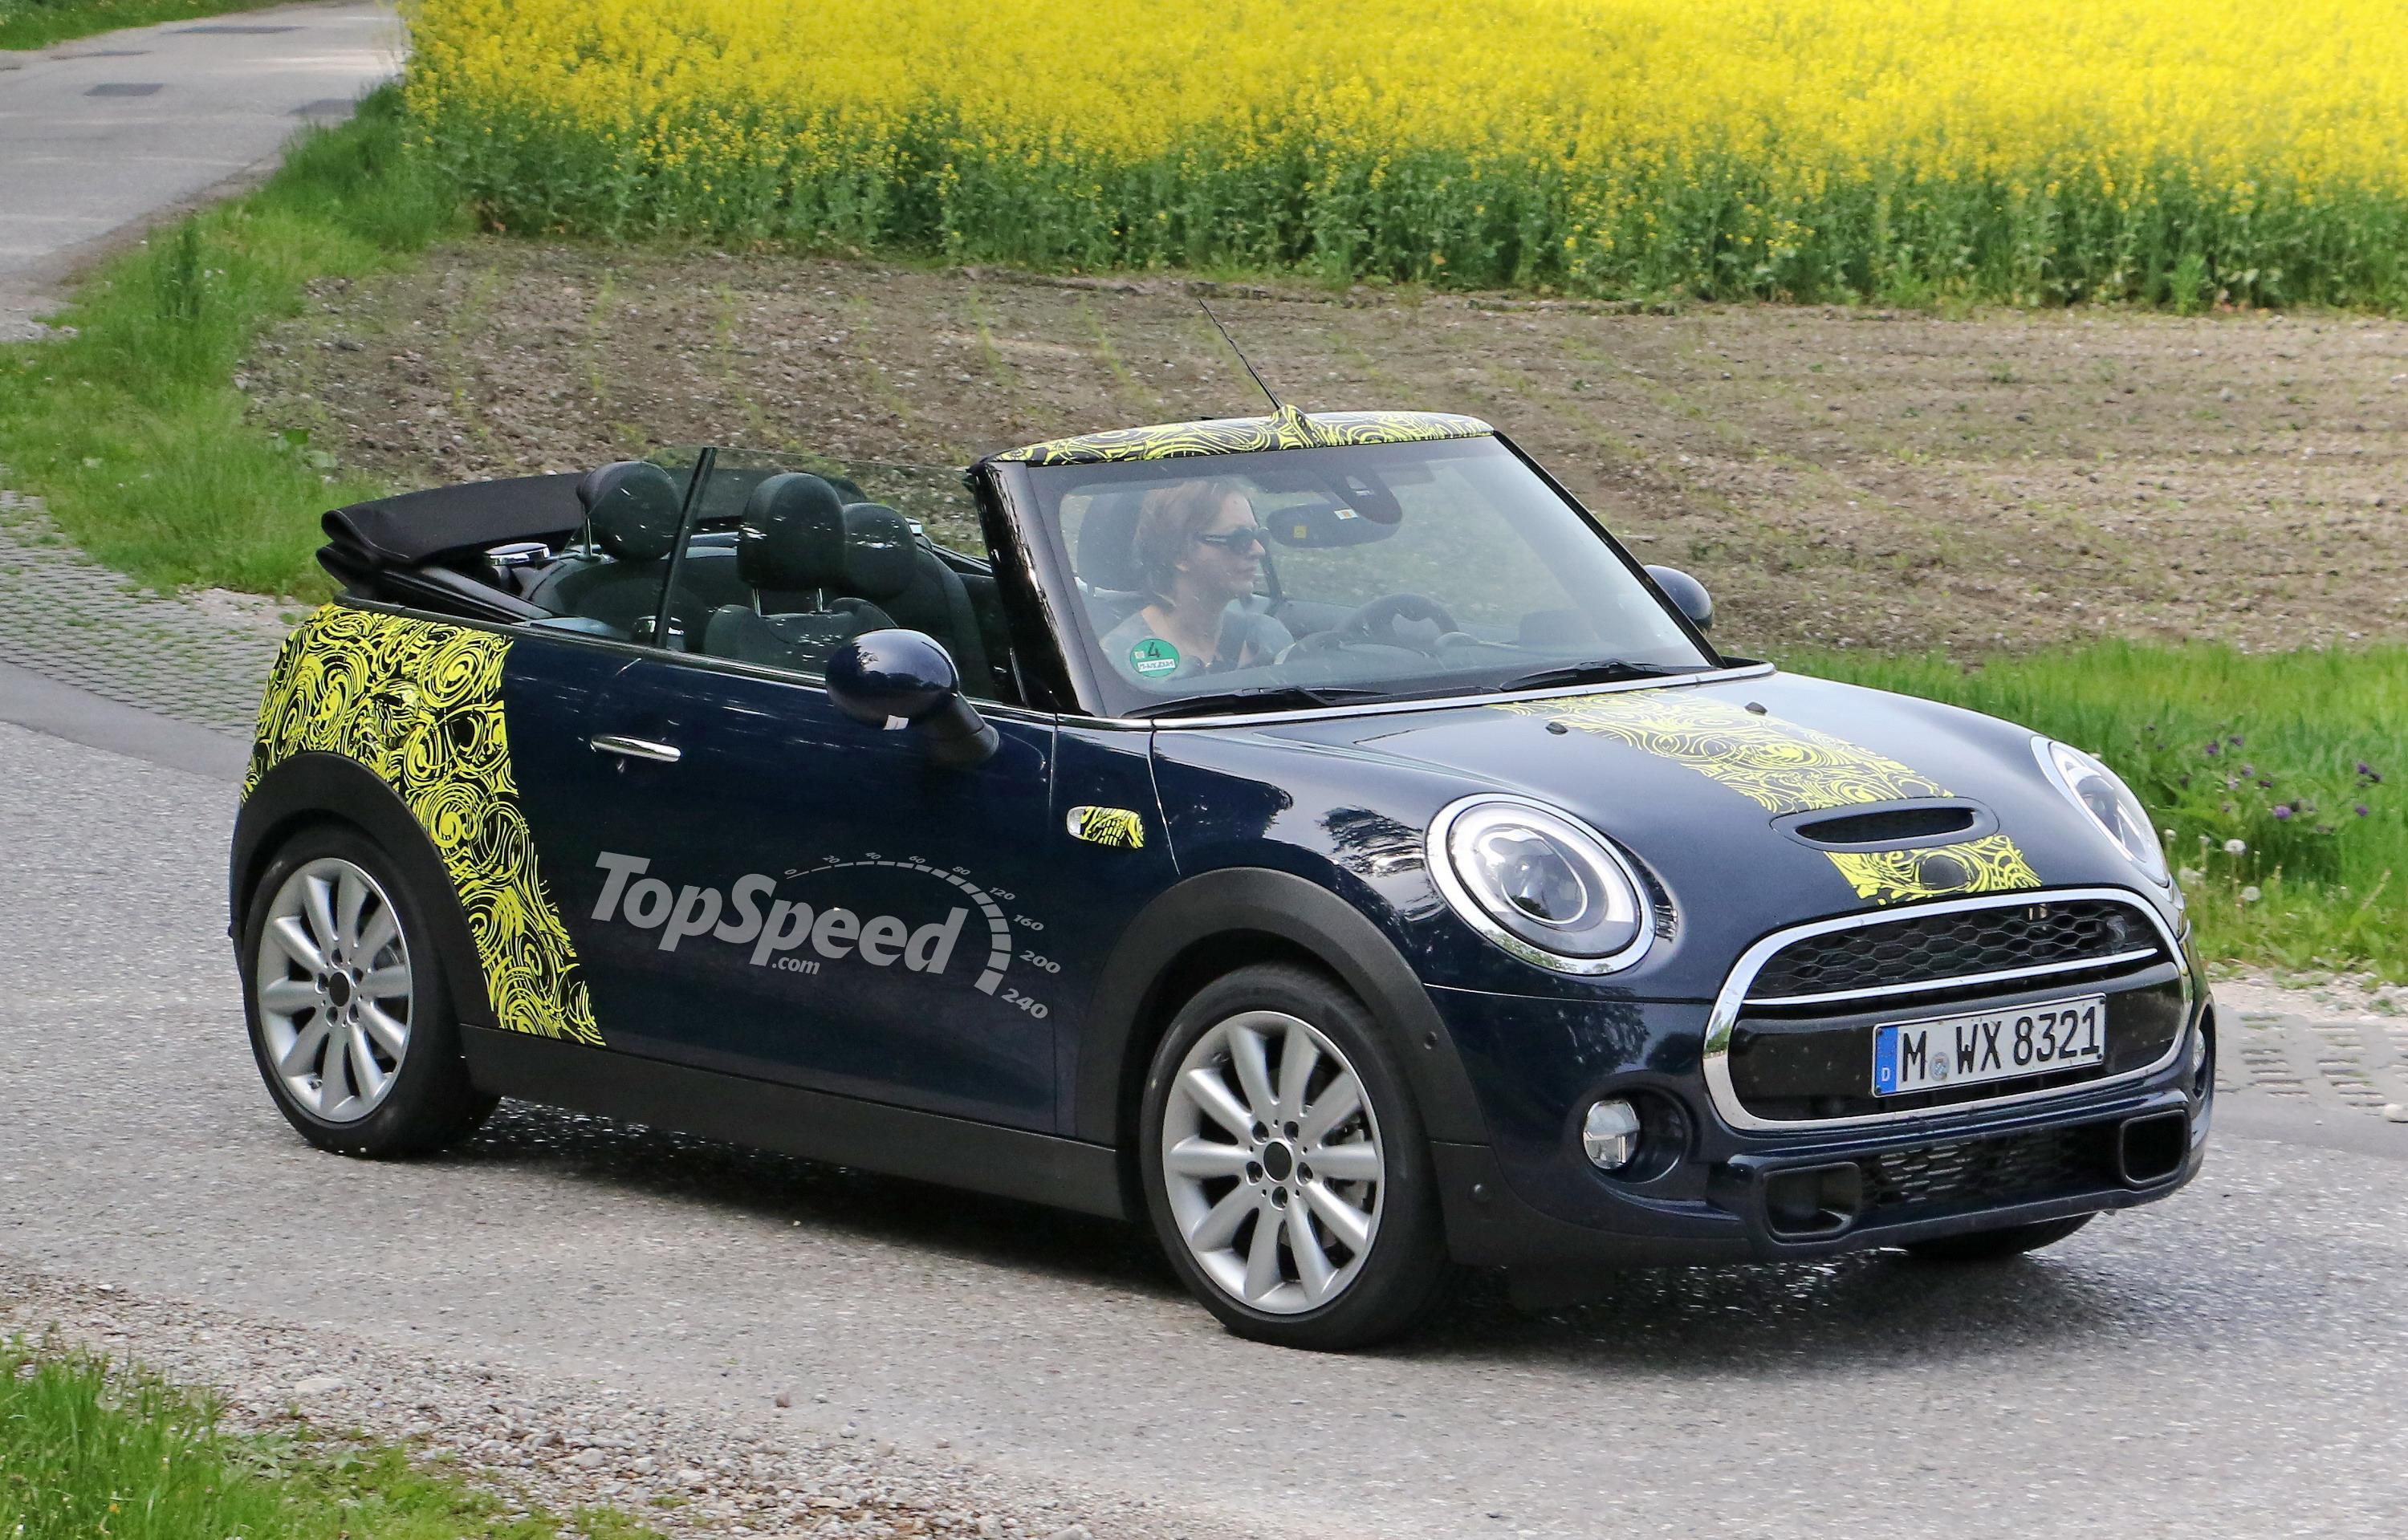 cooper mini motoring sunny side up s img door convertible